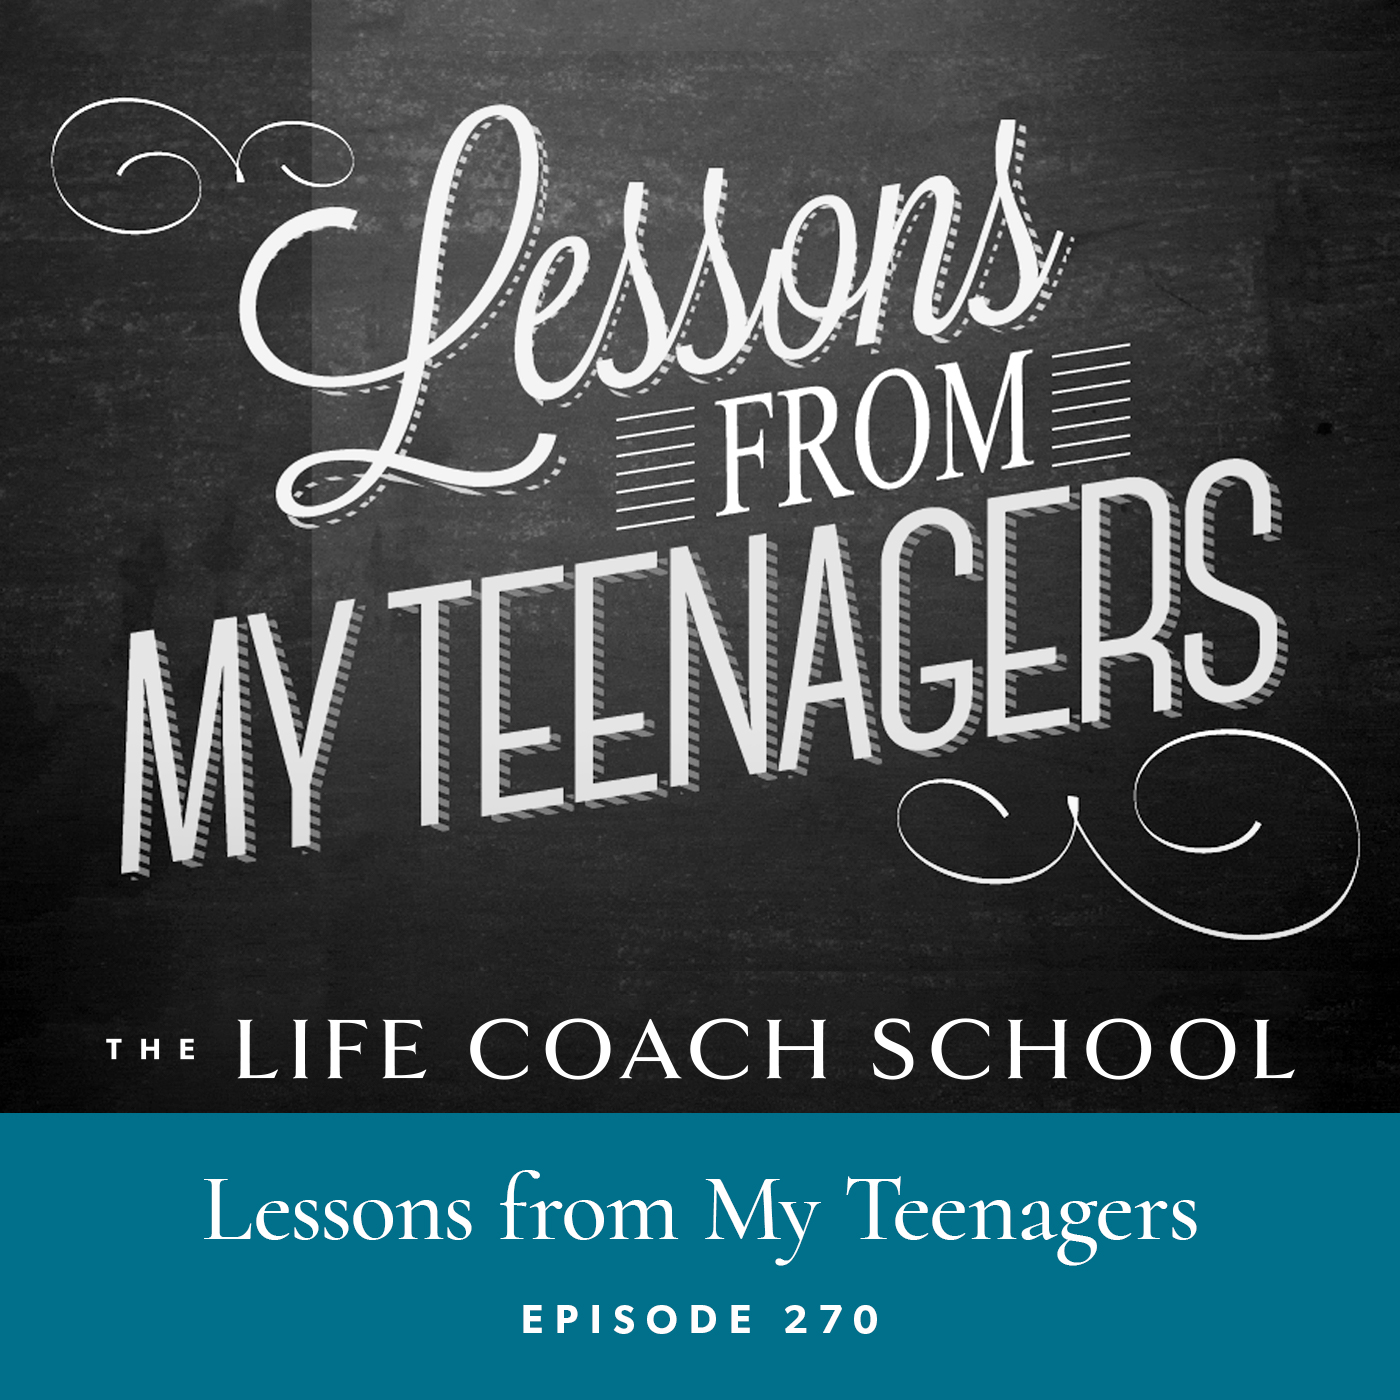 The Life Coach School Podcast with Brooke Castillo | Episode 270 | Lessons from My Teenagers